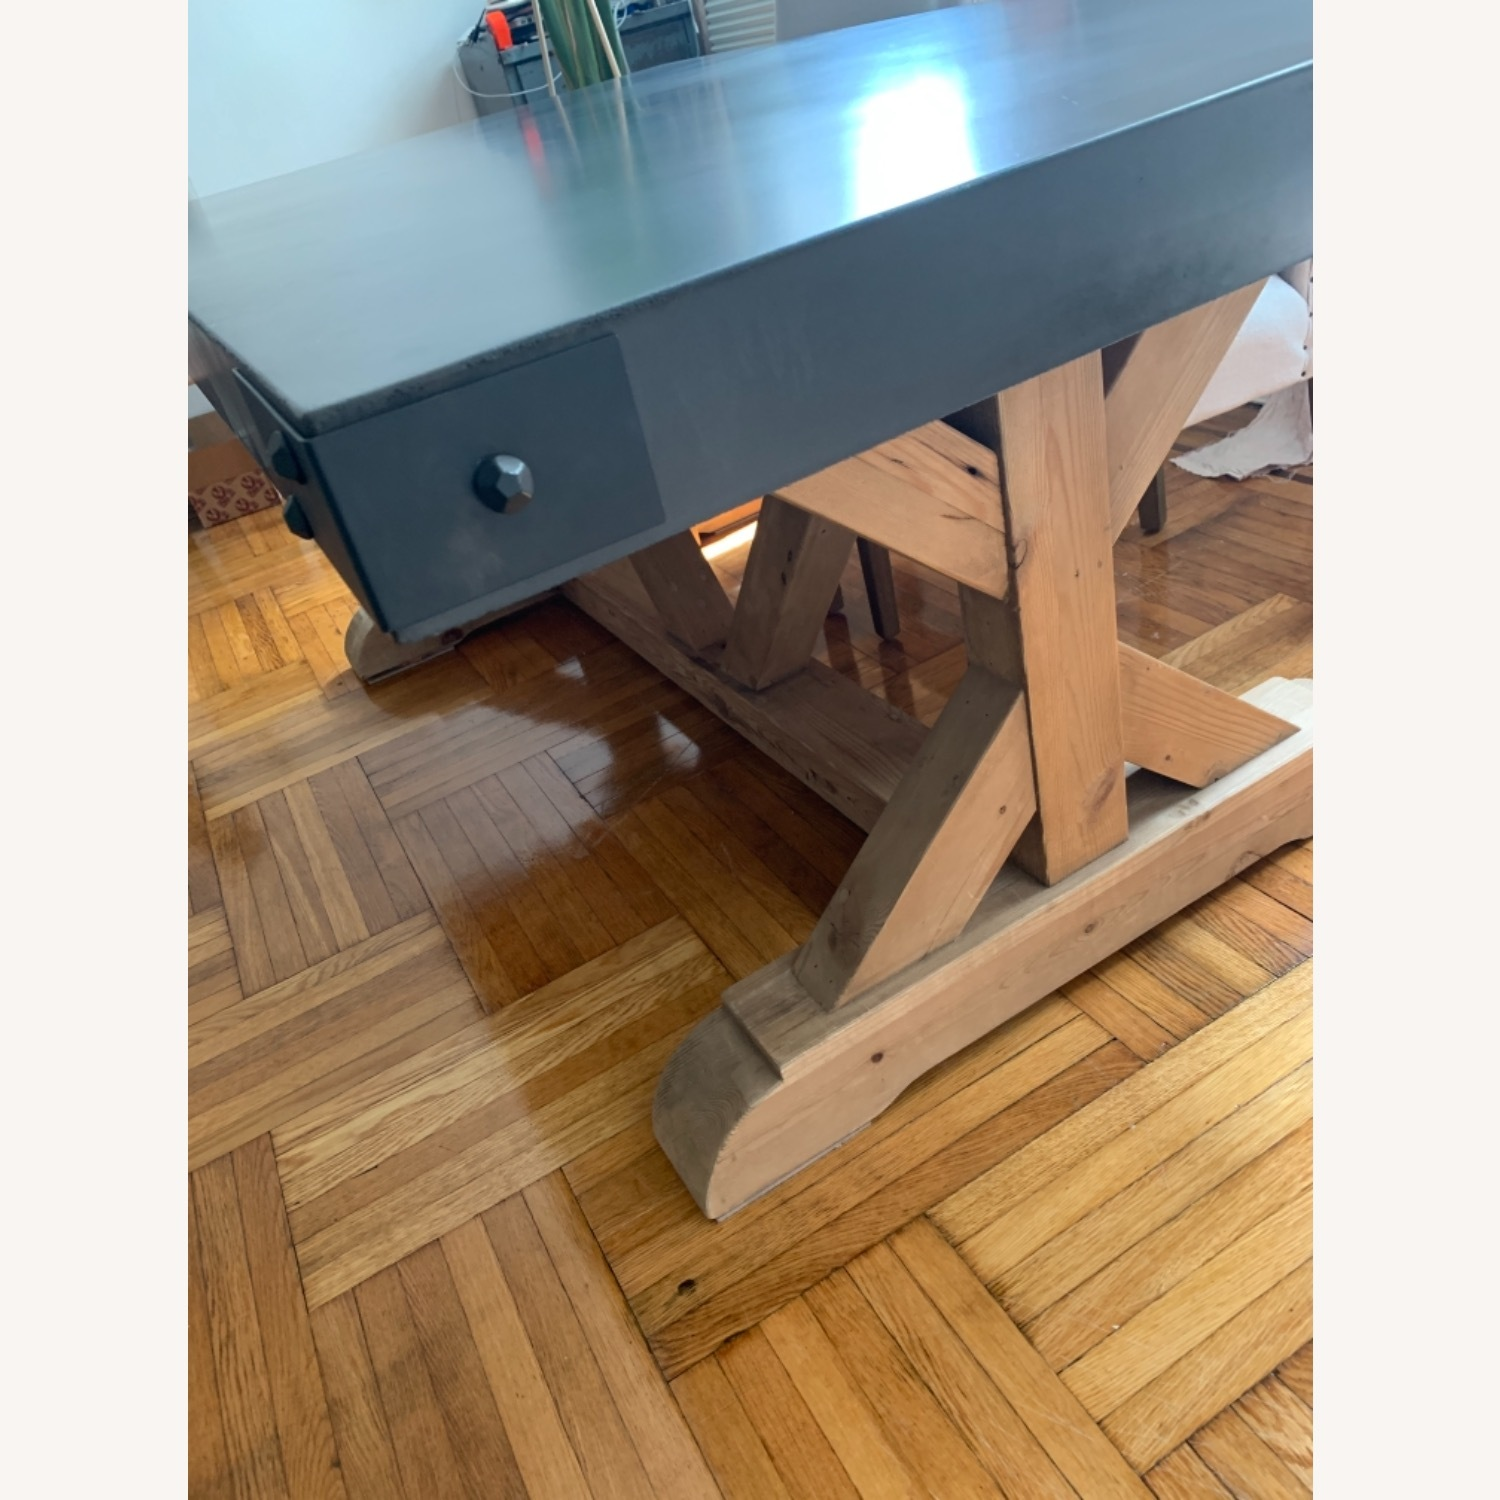 Restoration Hardware Salvaged Wood and Concrete Dining Table - image-13